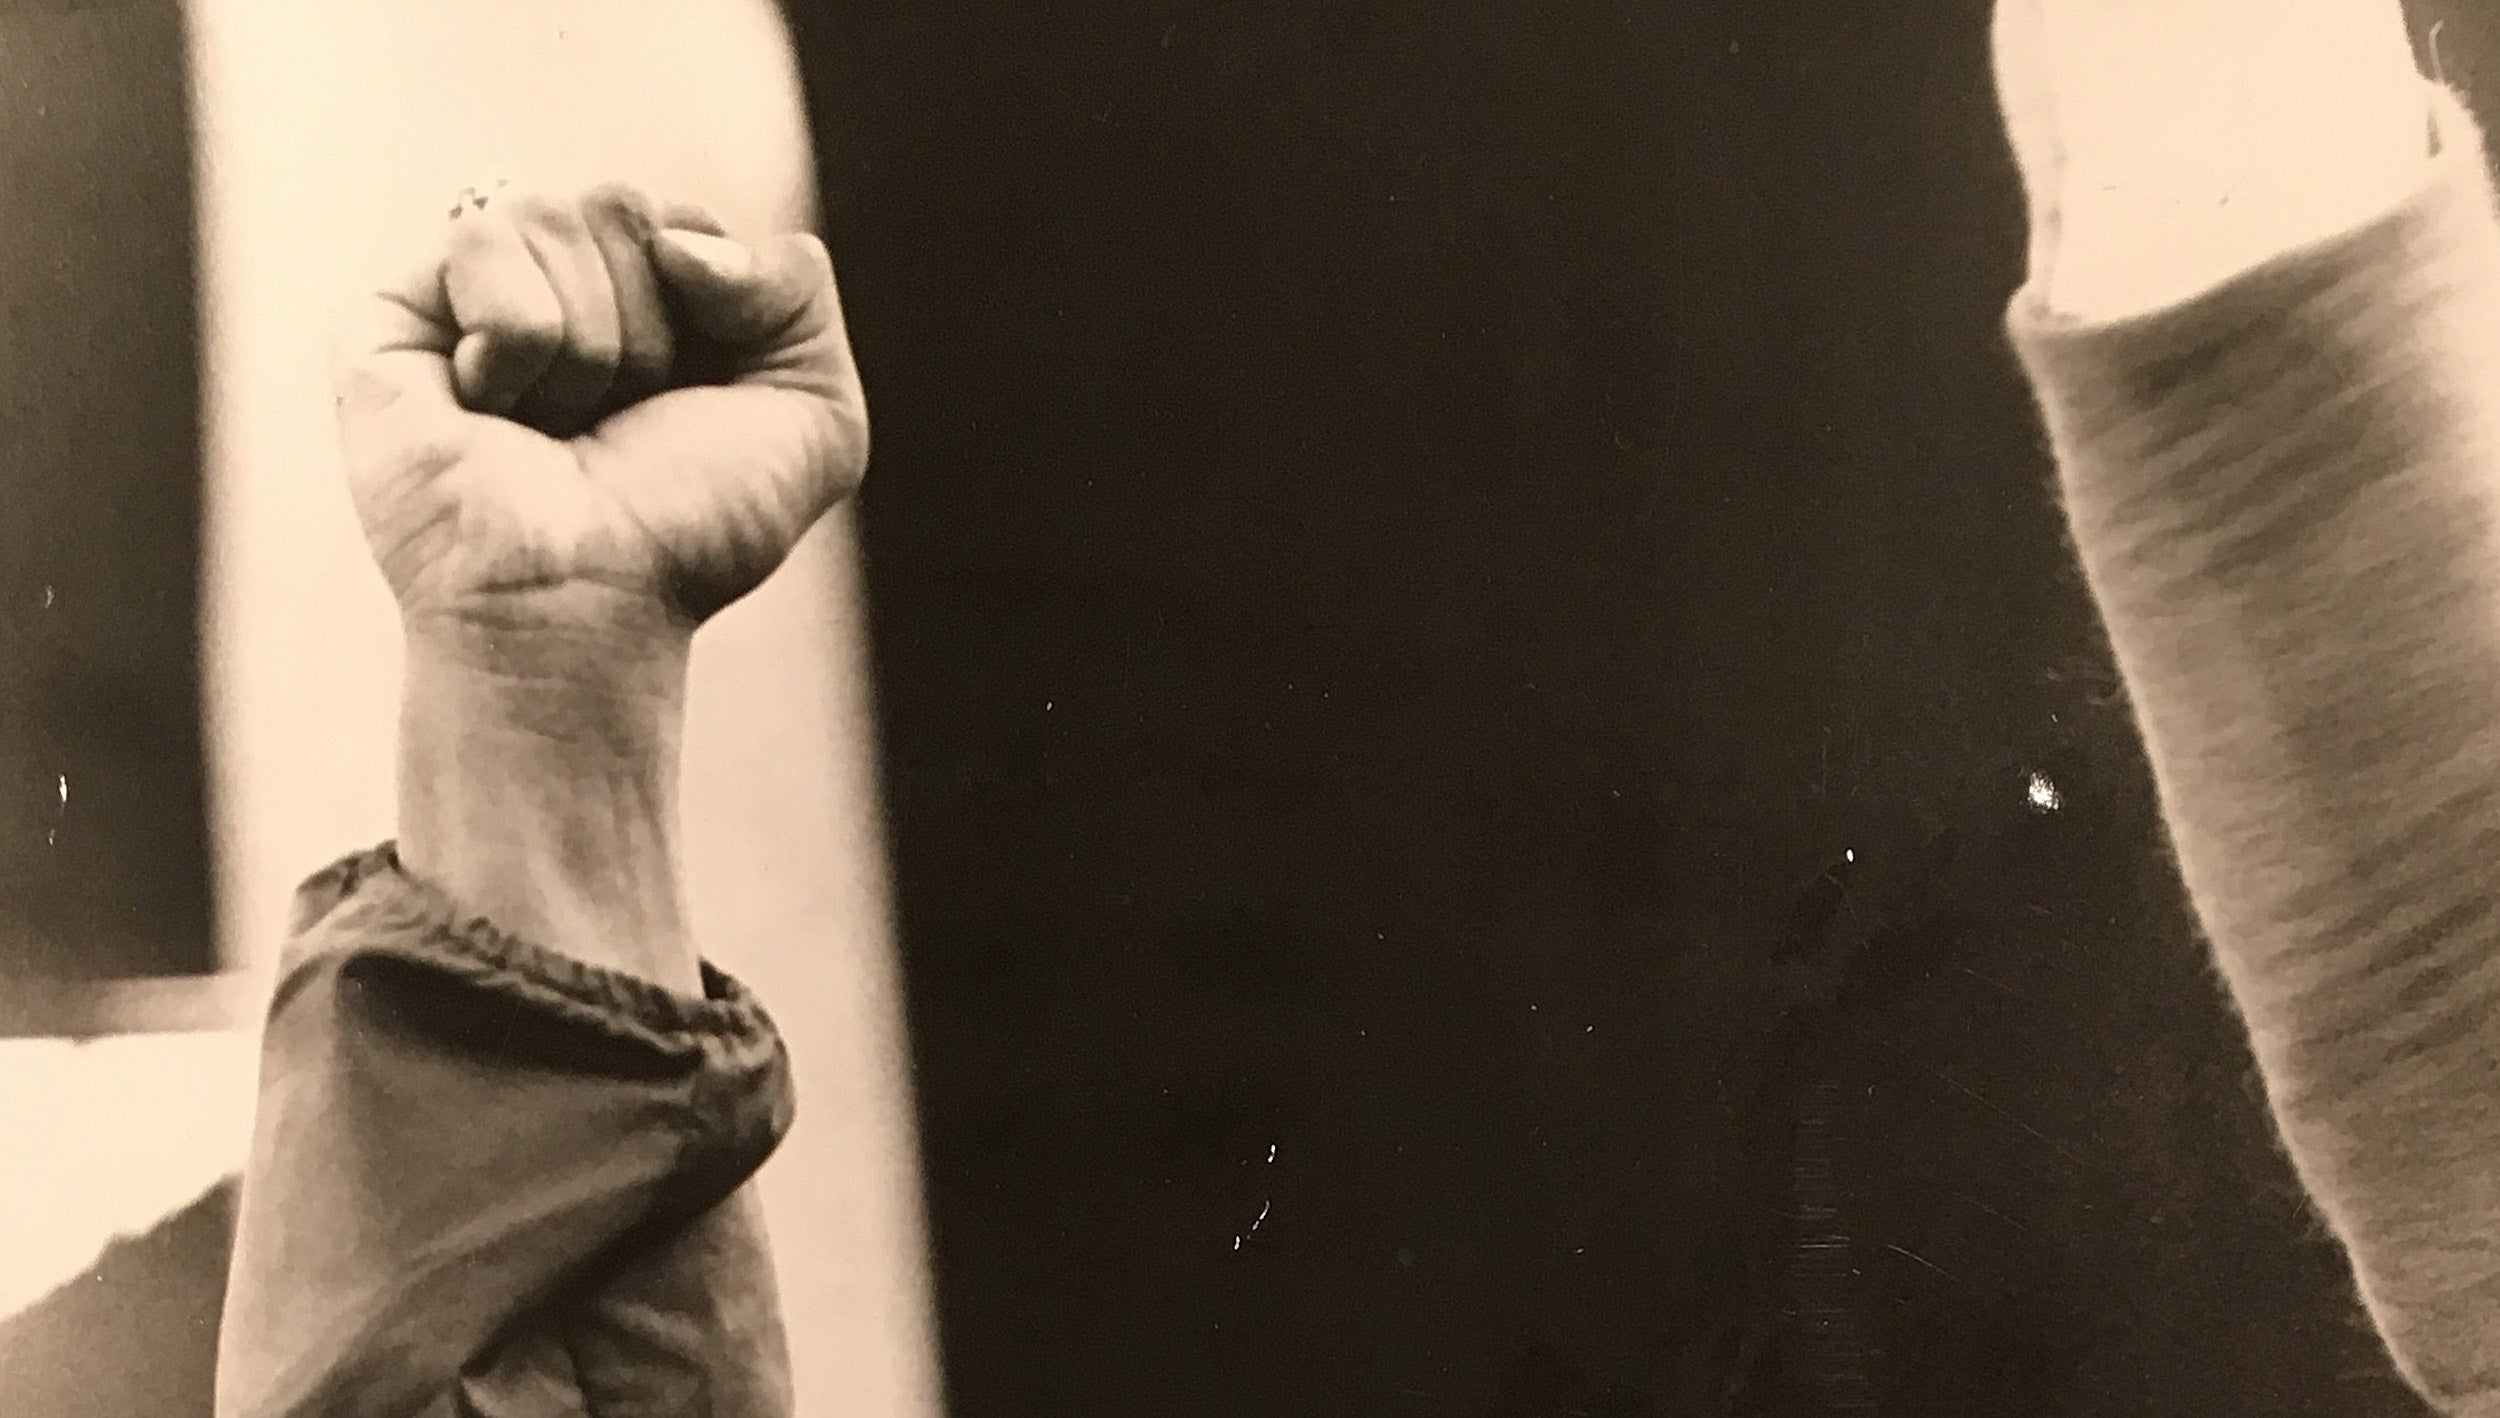 Closeup of a fist raised during 1969 strike.